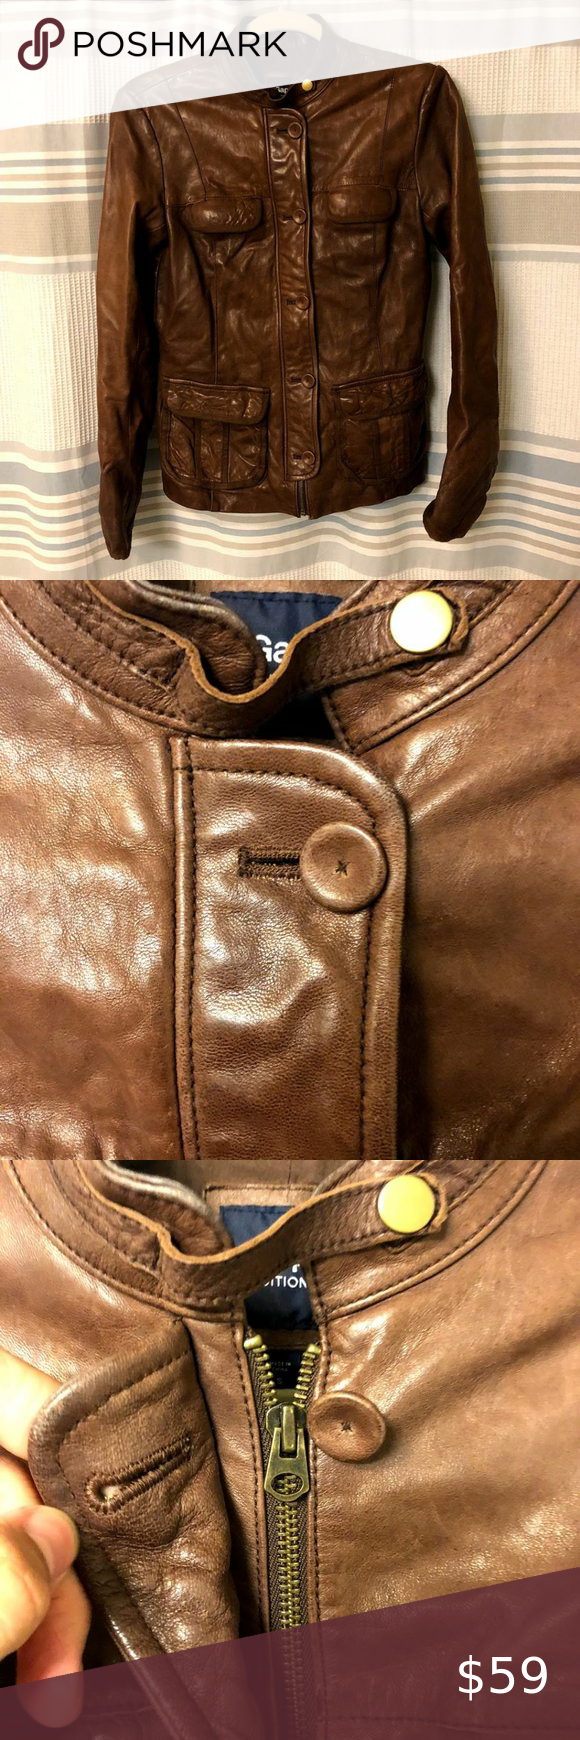 Gap Edition 100 Leather Brown Jacket Small Purple Leather Jacket Zipped Leather Jacket Brown Jacket